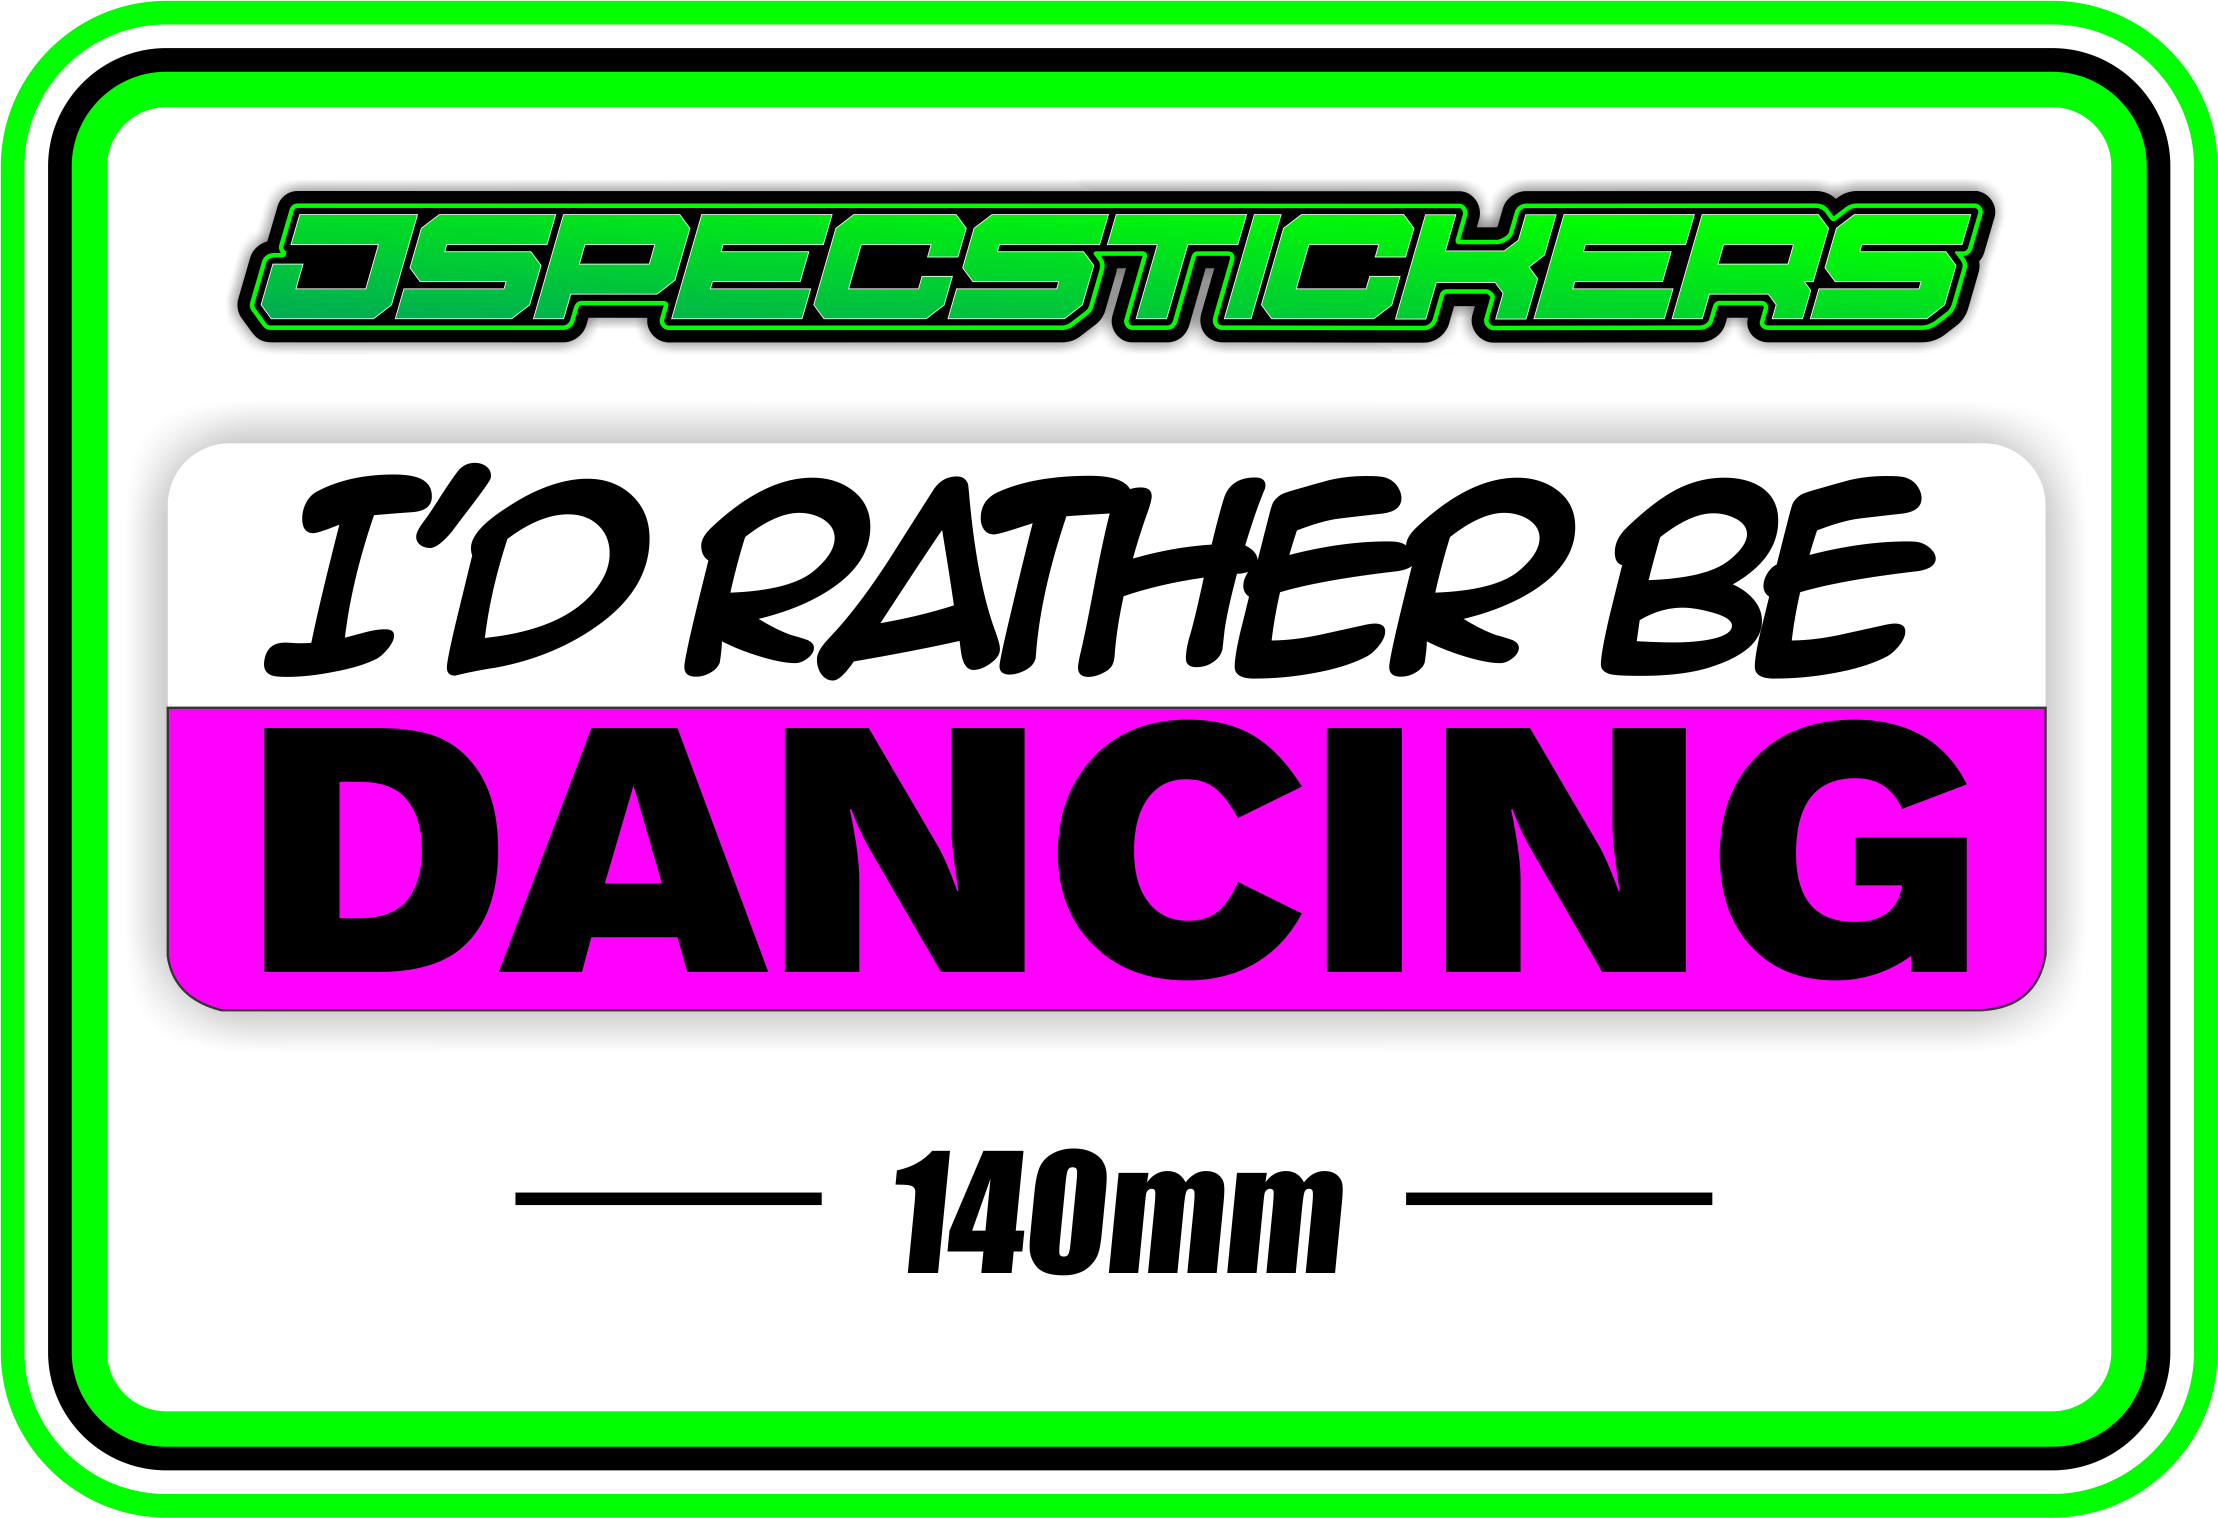 I'D RATHER BE DANCING BUMPER STICKER - Jspec Stickers